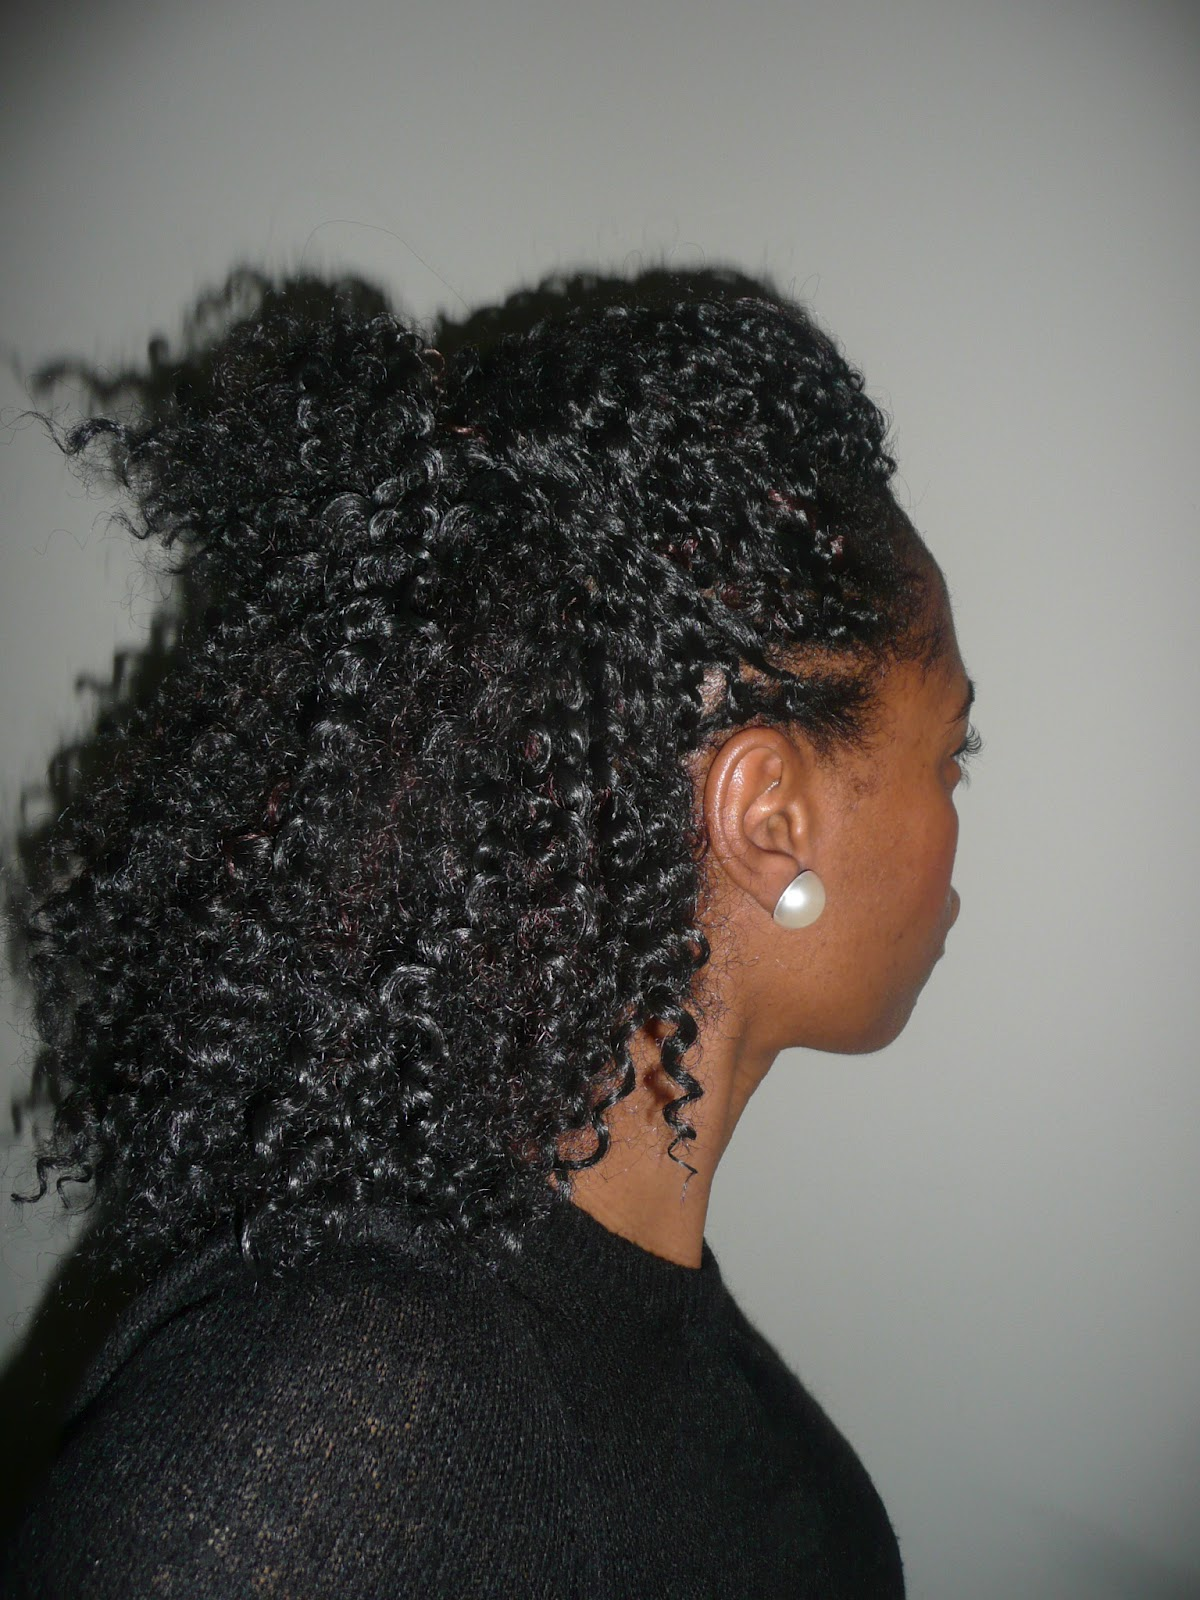 My HAIR Today: Crochet Braid Style #1 Simply Into My HAIR